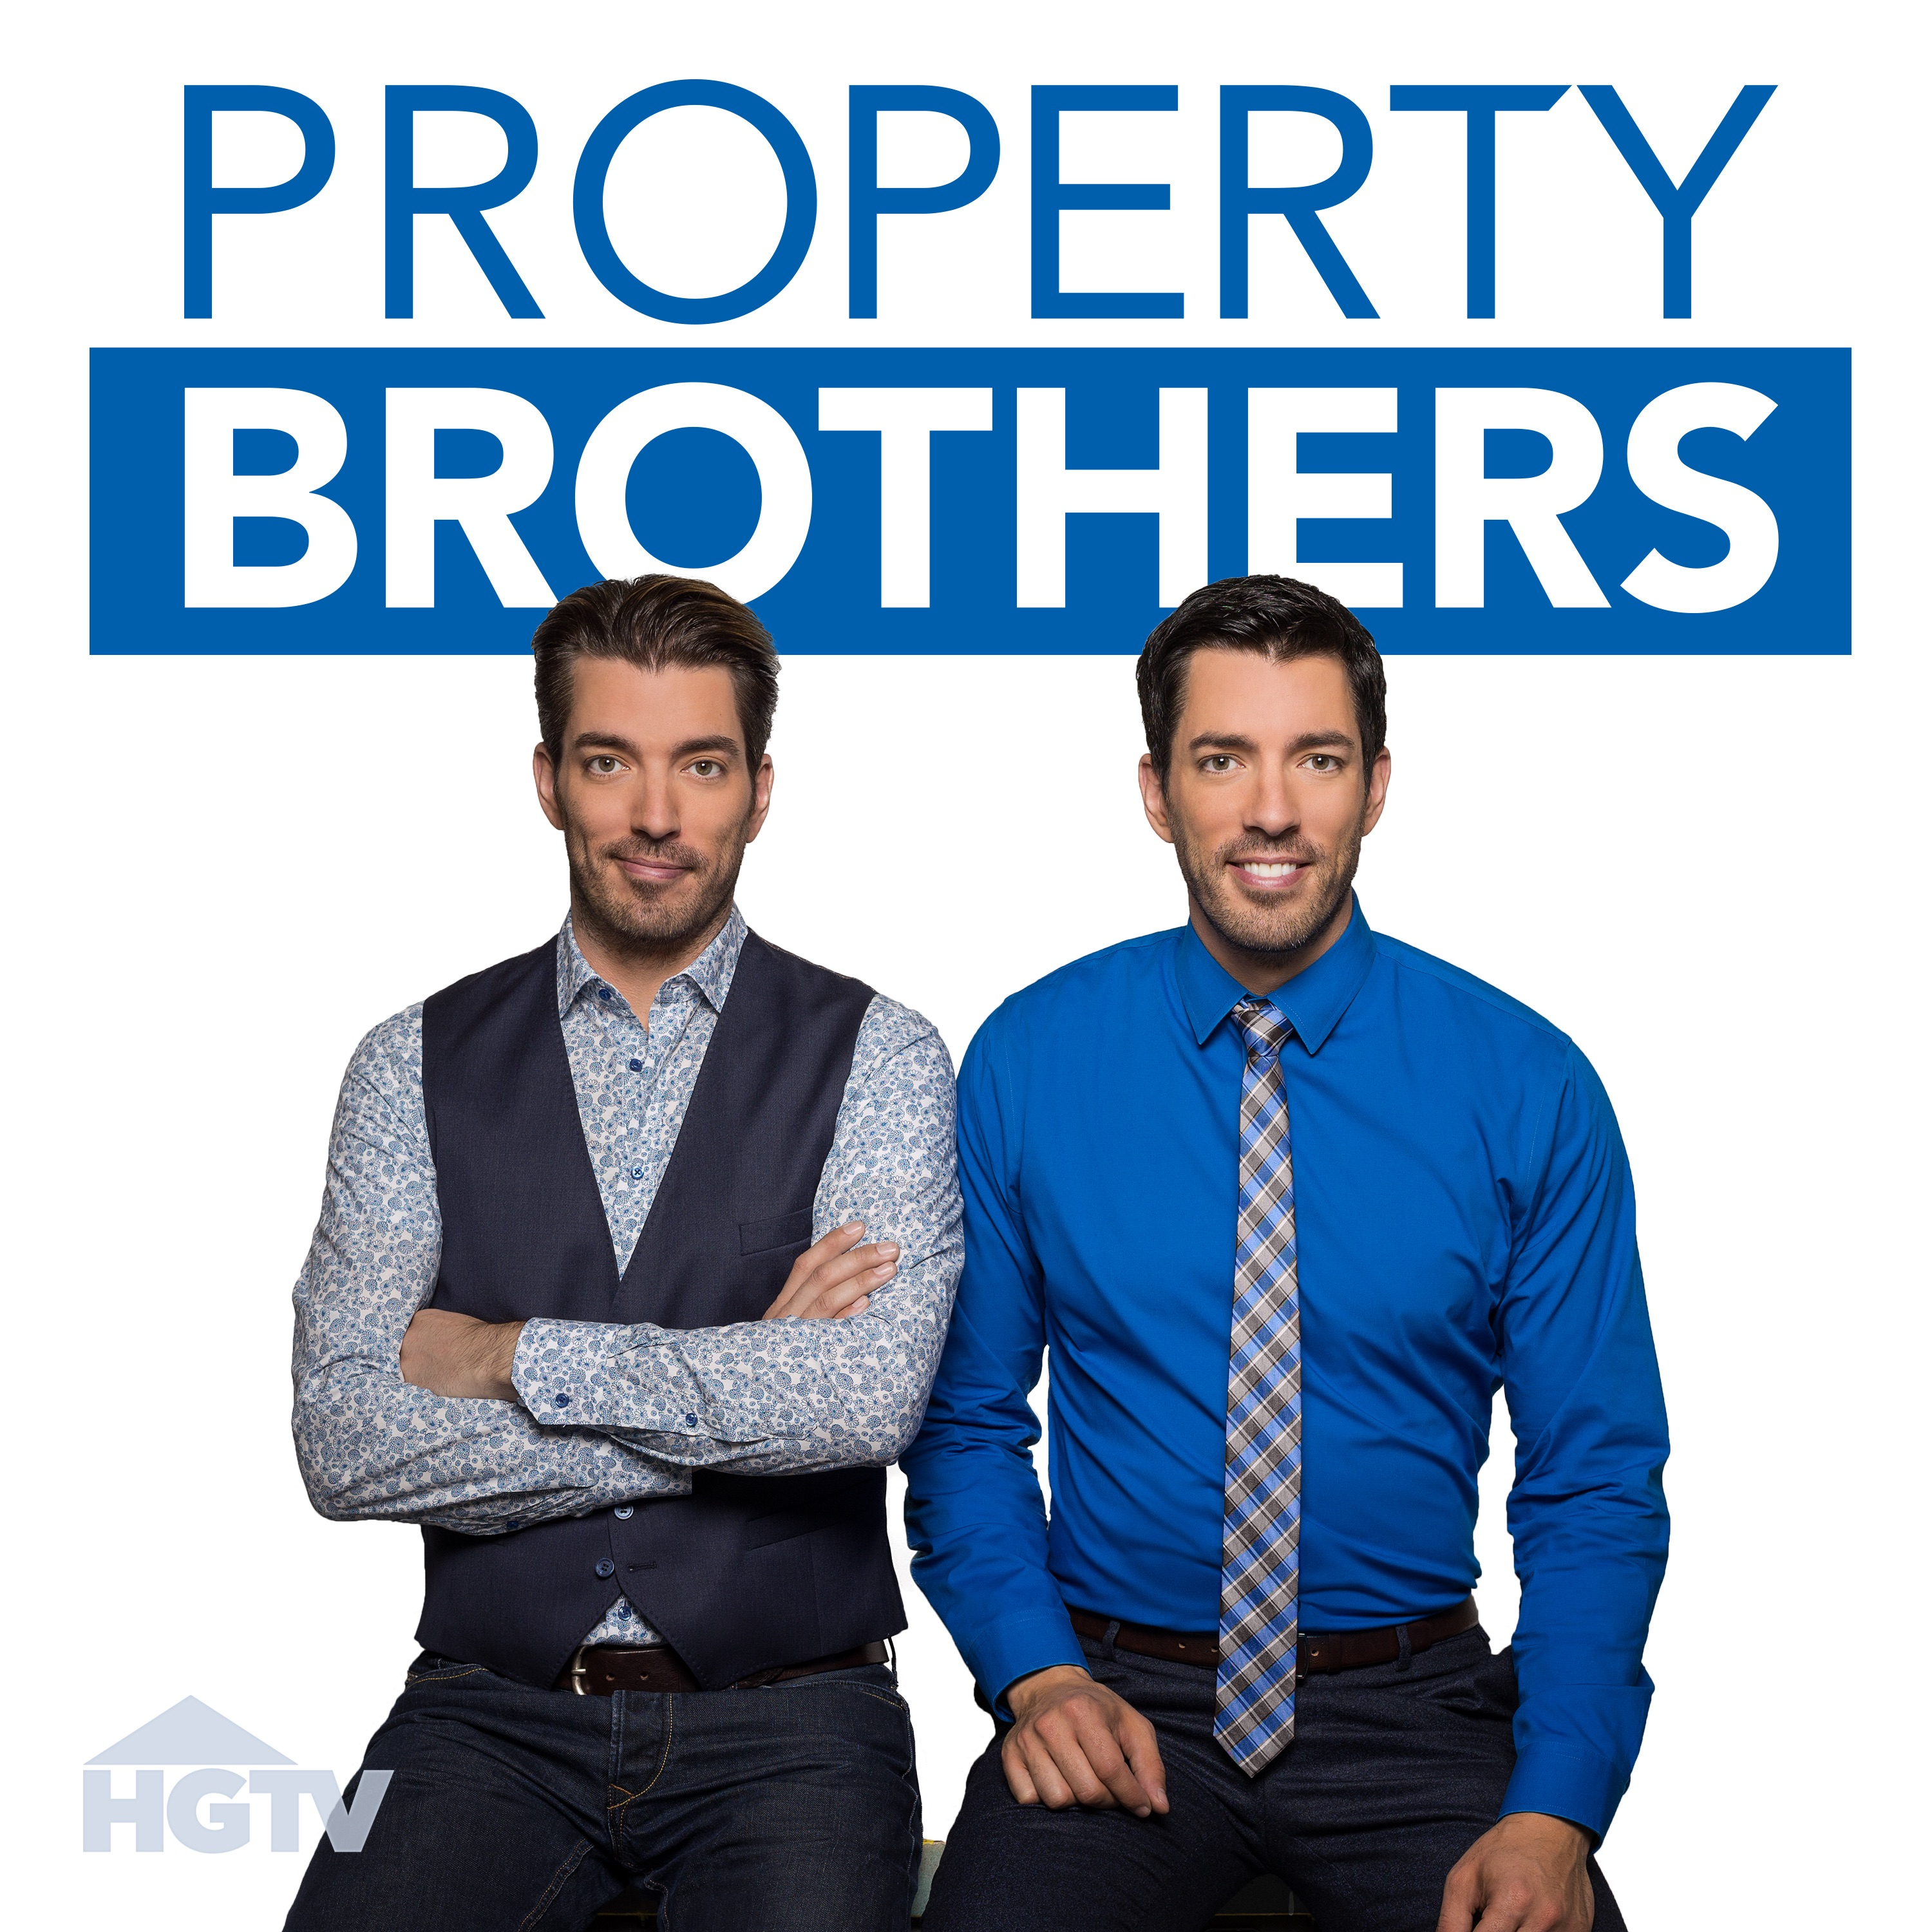 Who are the property brothers